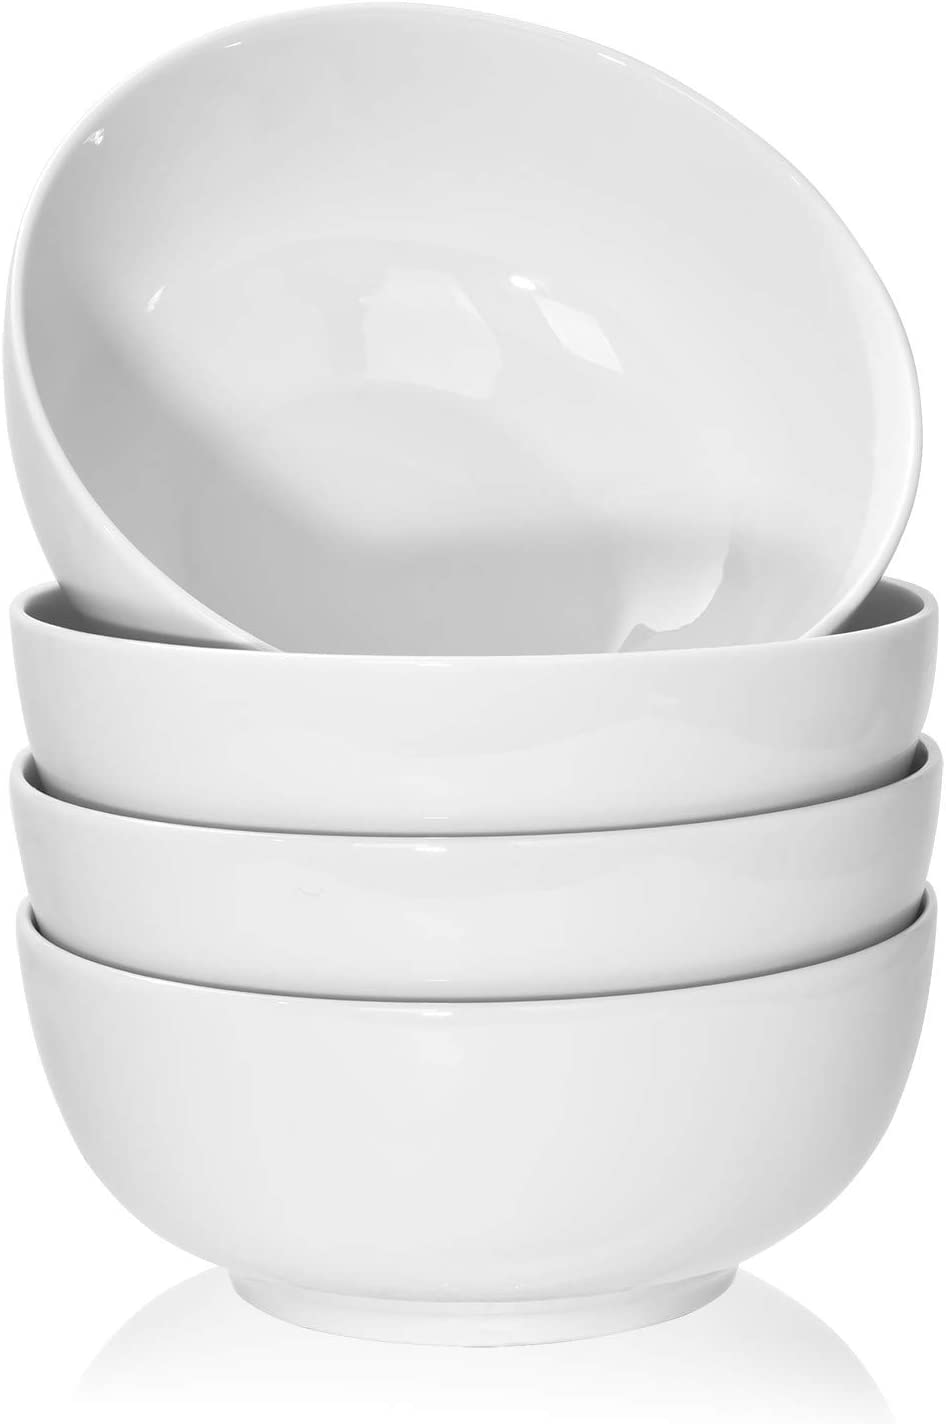 TGLBT 40 Ounce Porcelain Soup Bowls - 4 Packs, Stackable Round, White